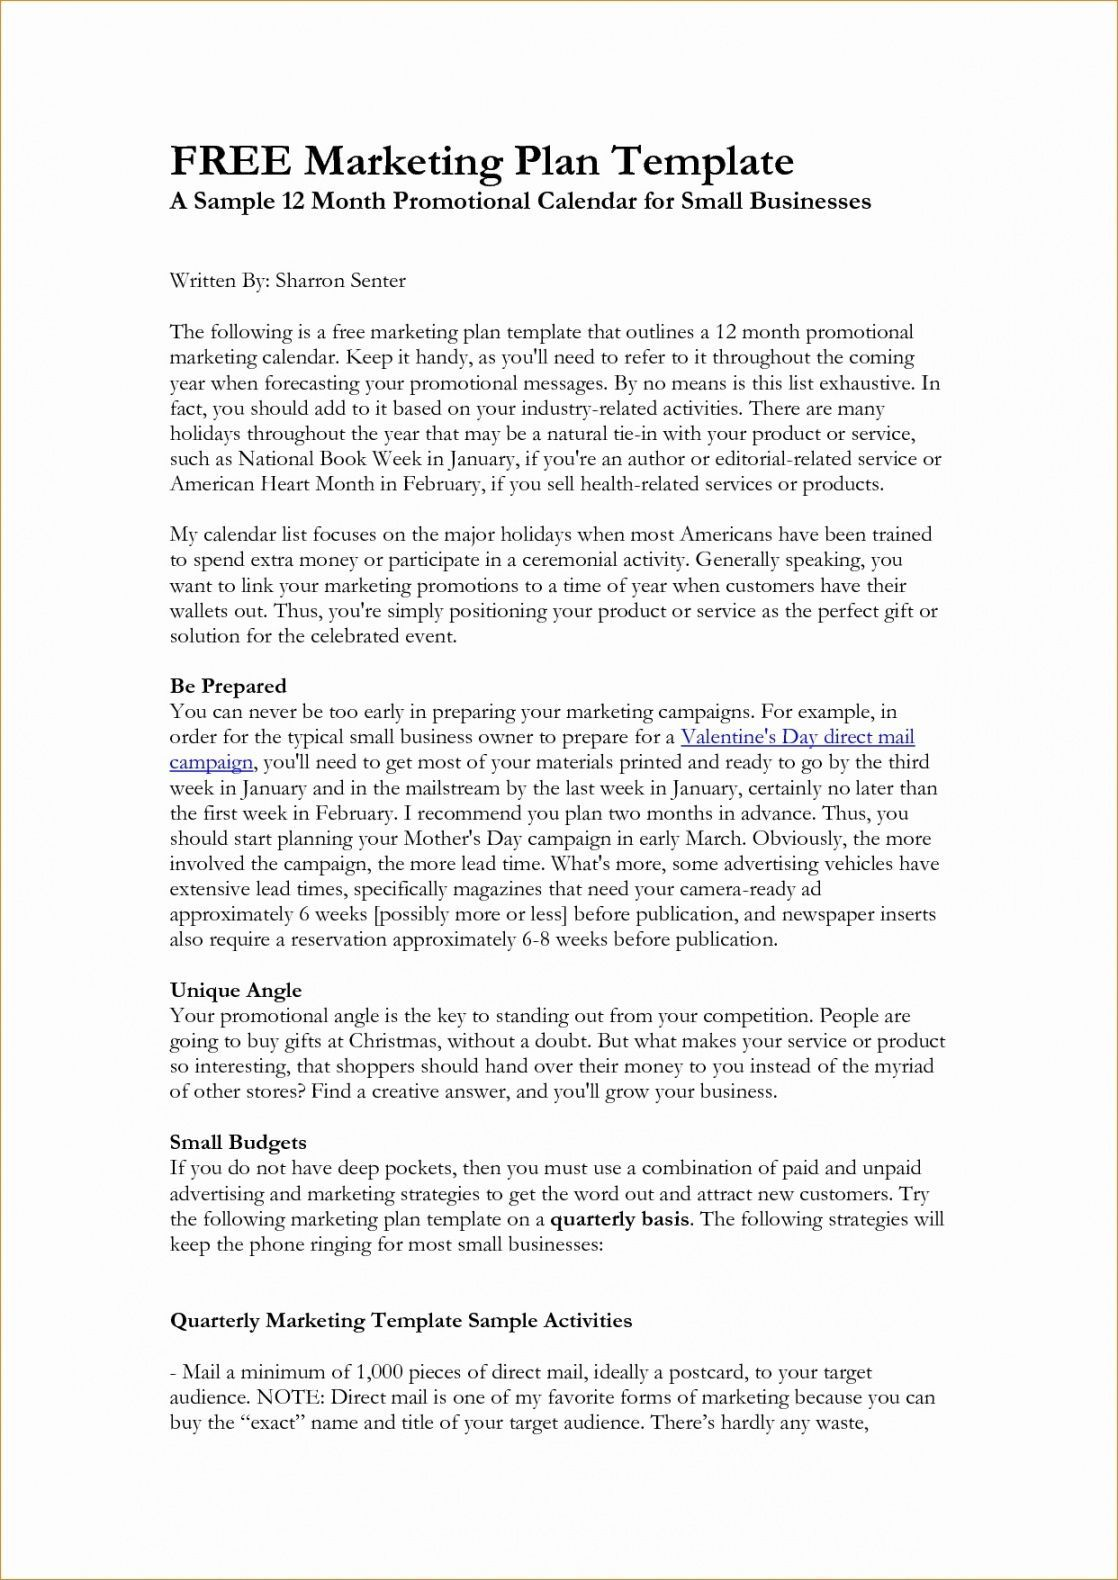 New Product Proposal Template In 2021 Marketing Plan Template Business Plan Template Word Business Plan Template